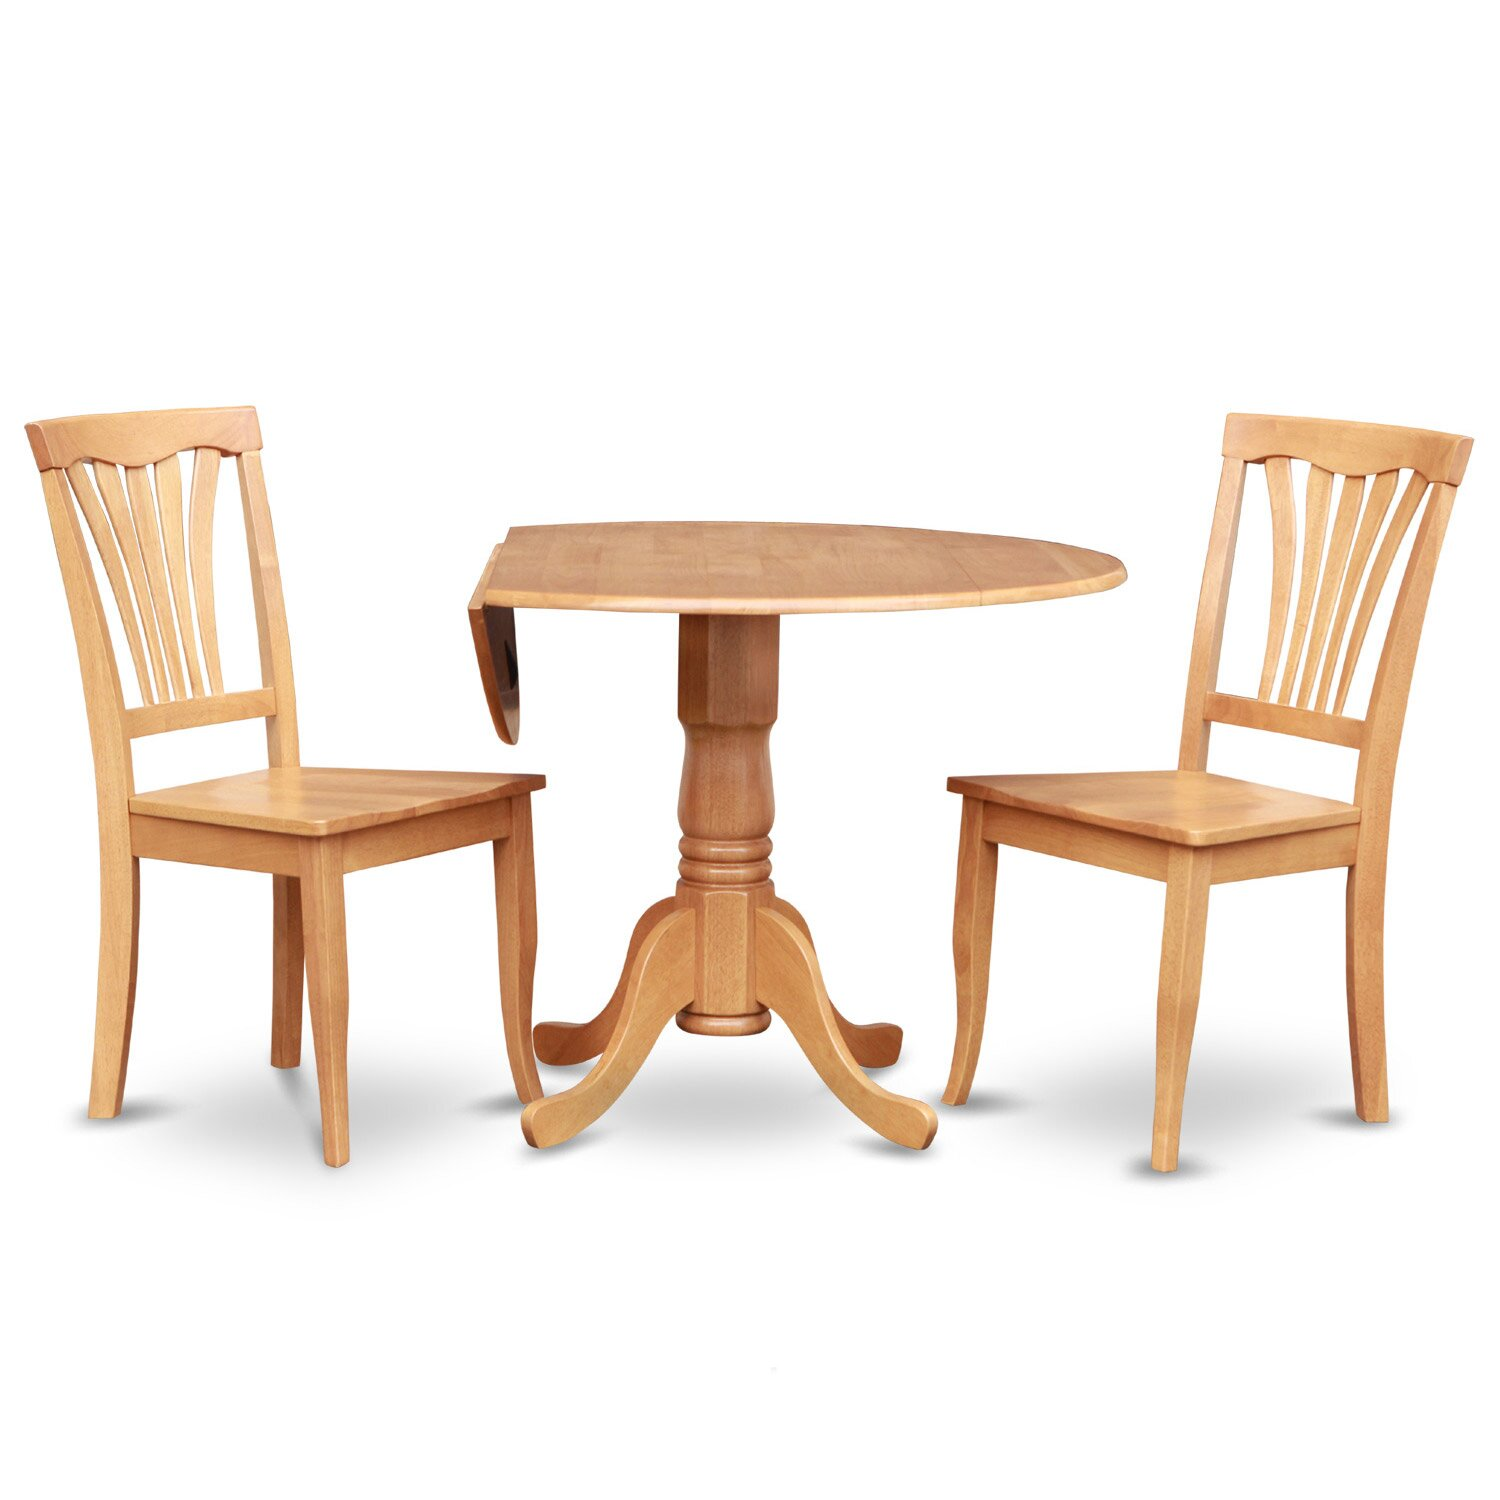 Wooden importers dublin 3 piece dining set reviews wayfair for Kitchen dining table chairs